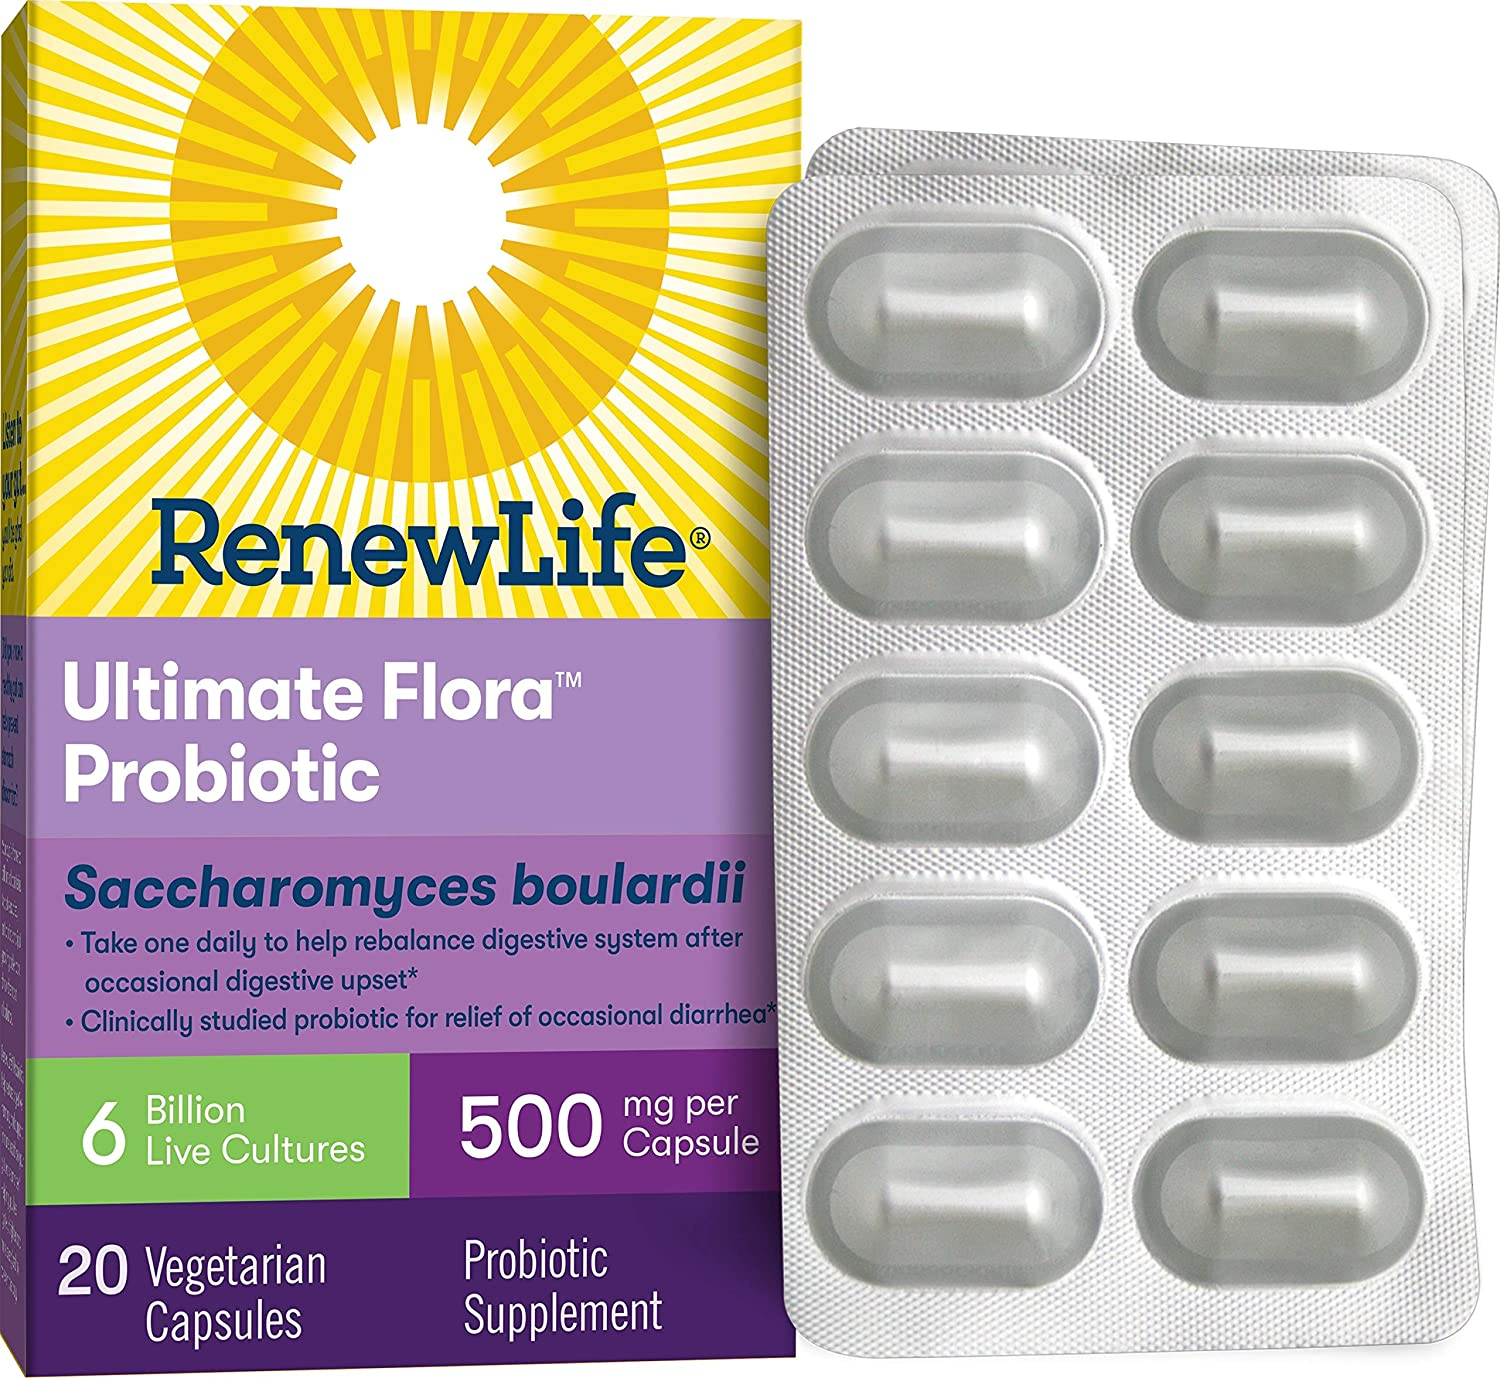 Renew Life® Adult Probiotic - Ultimate Flora™ Saccharomyces boulardii Probiotic Supplement - Shelf Stable, Gluten, Dairy & Soy Free - 6 Billion CFU - 20 Vegetarian Capsules